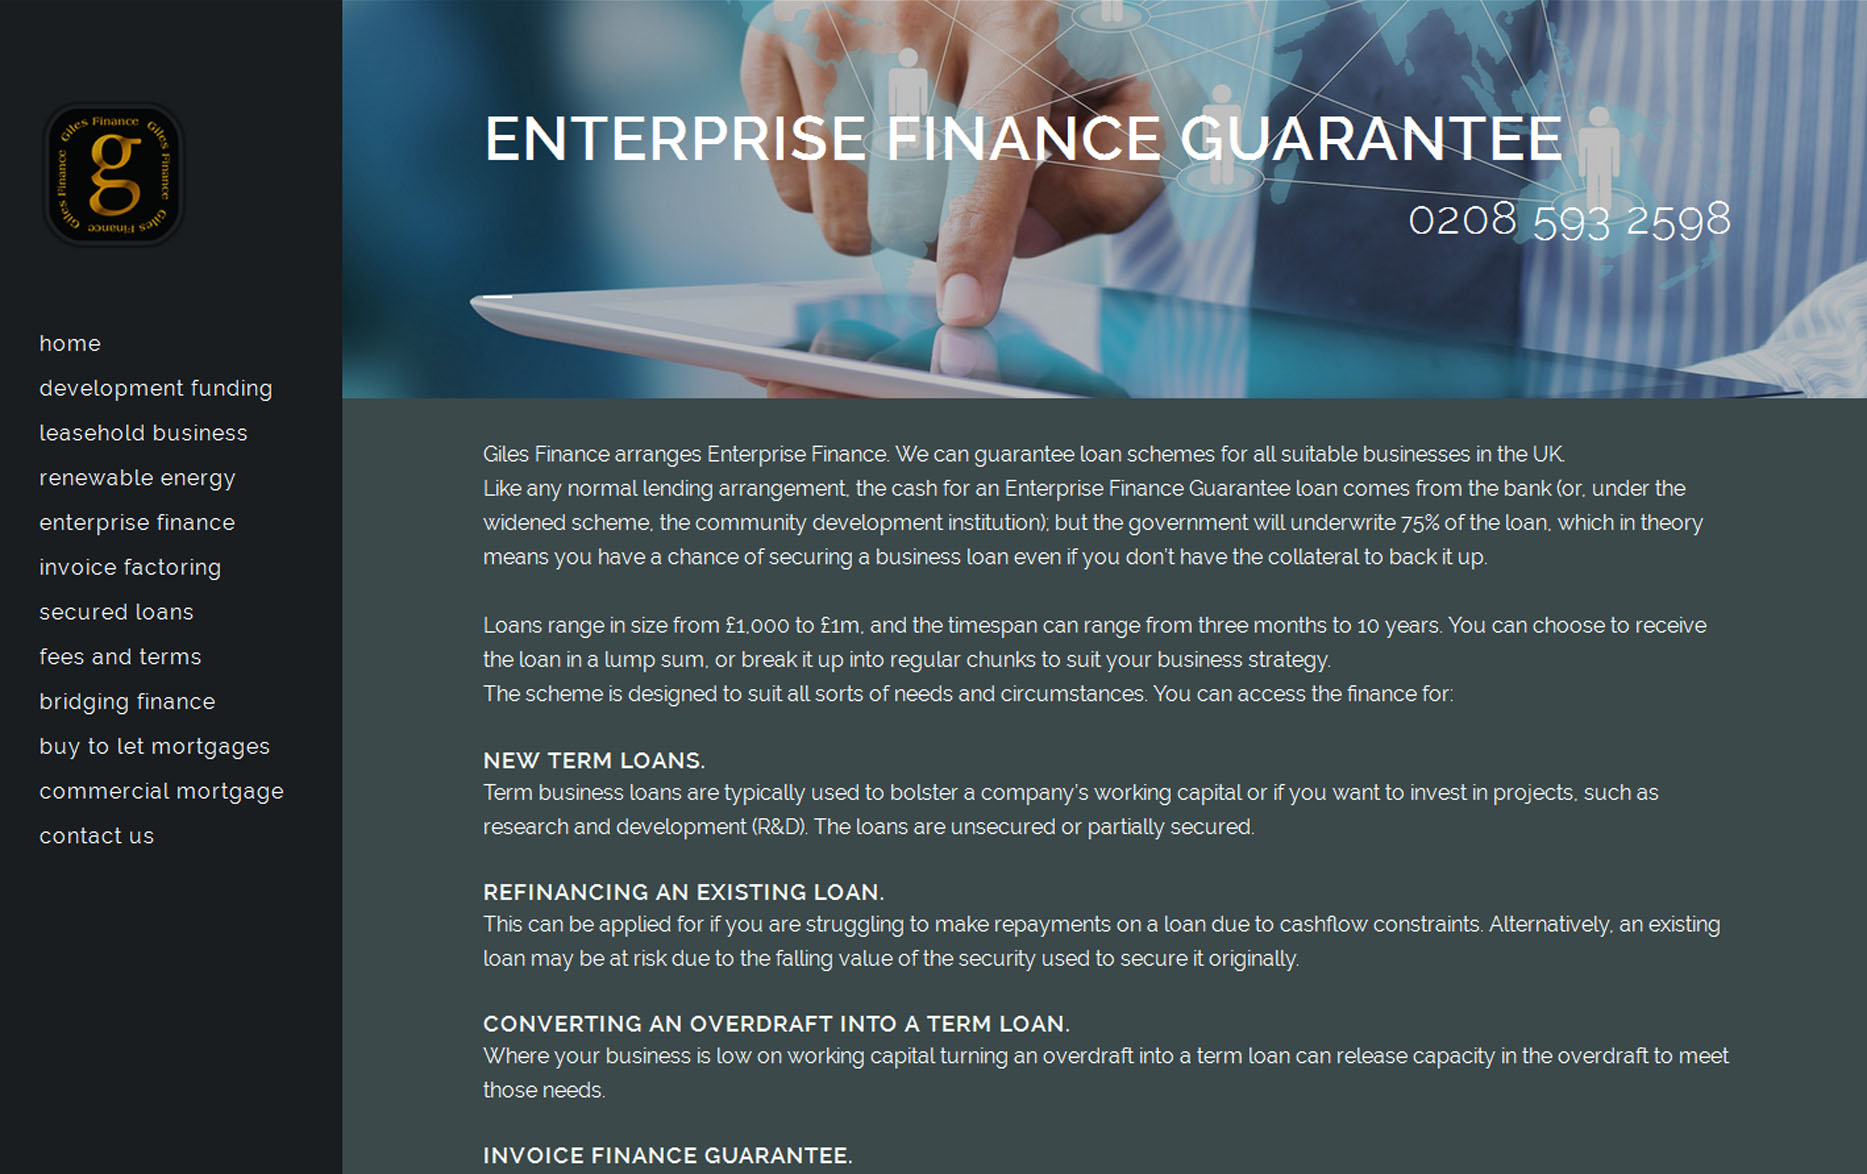 gilesfinance.co.uk-3